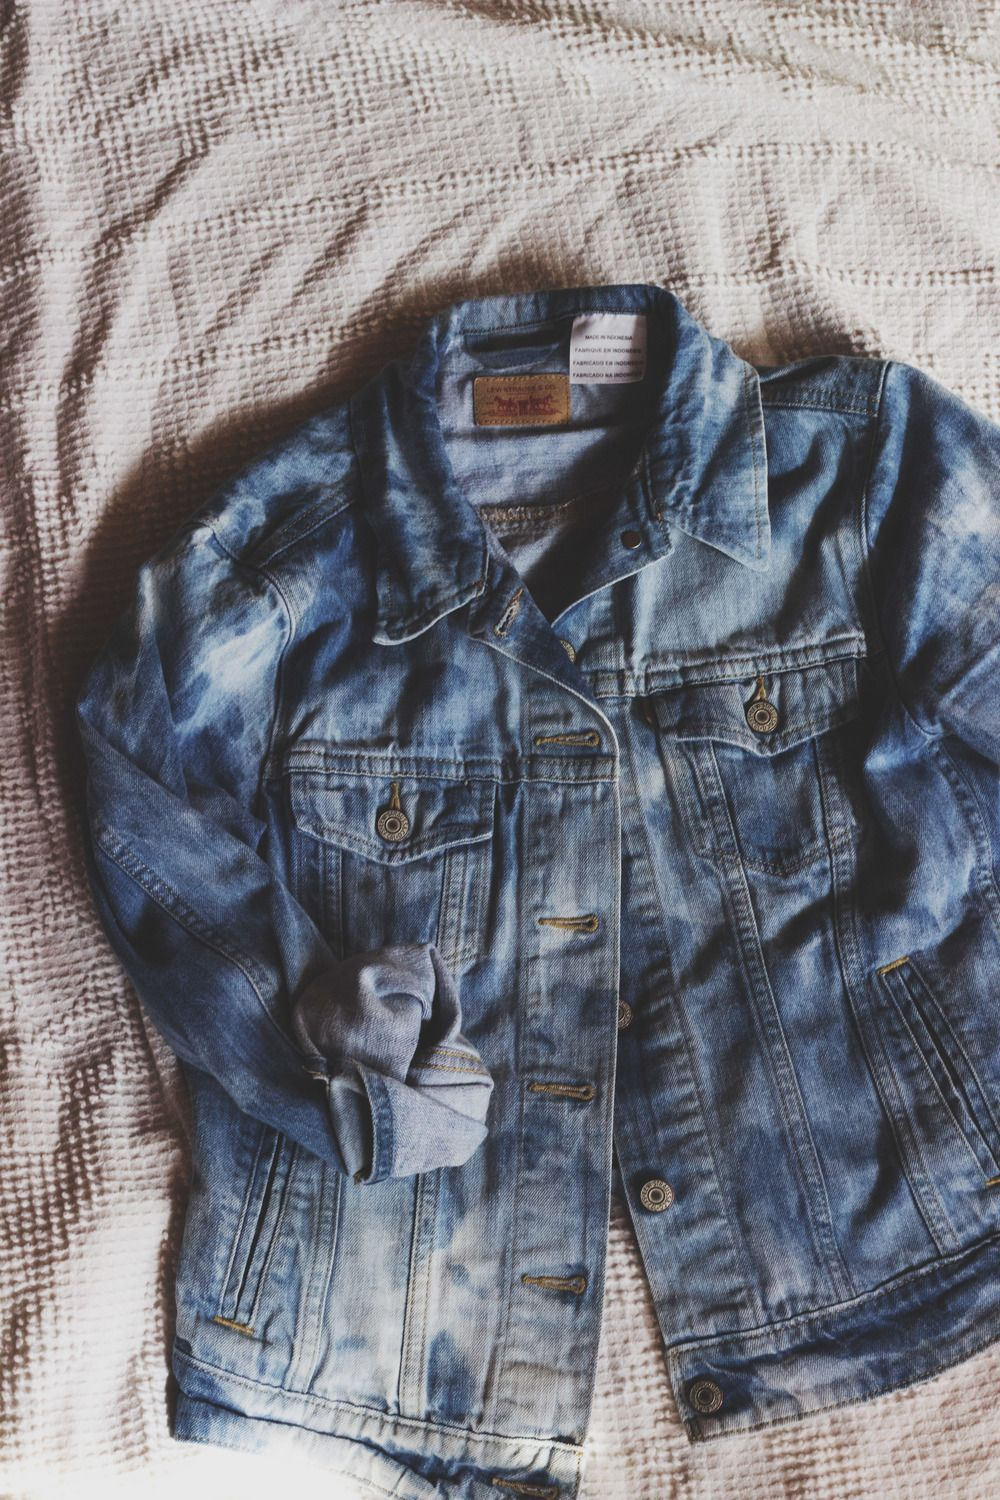 Stone-washing Denim: How To Lighten Your Jean Jacket With Bleach